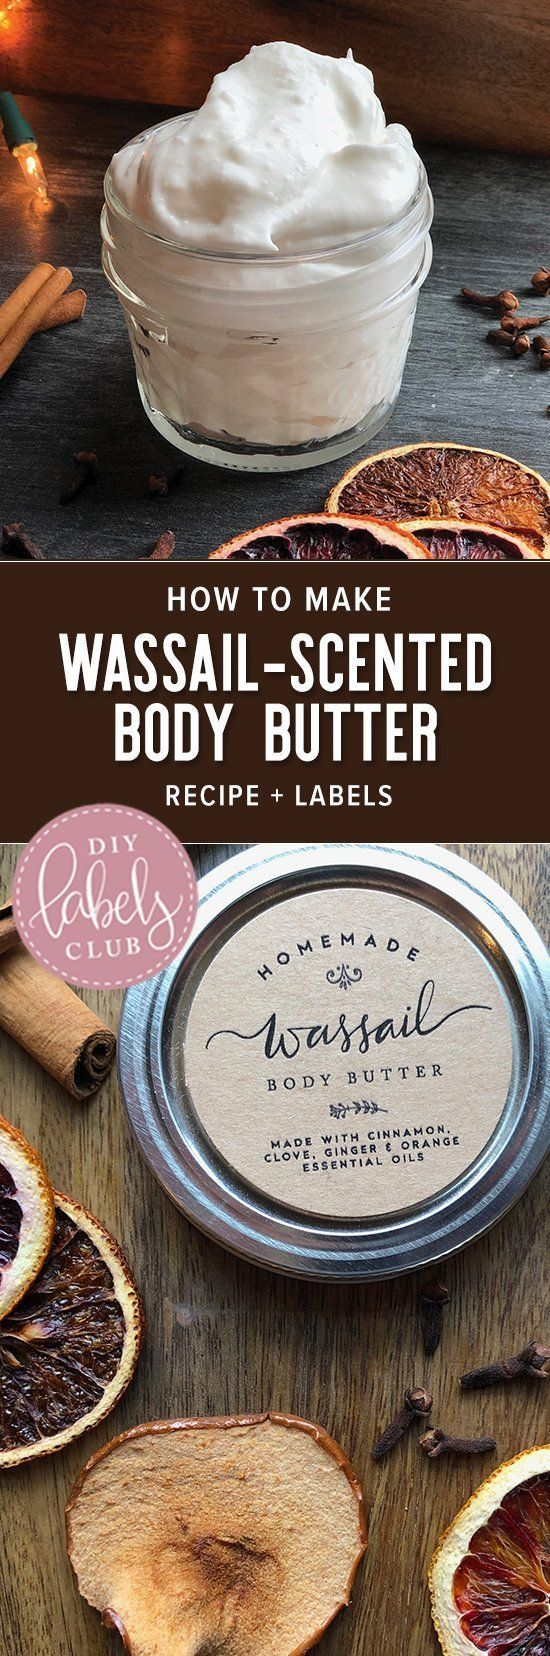 How to's : Whipped Wassail Body Butter Recipe - smells just like the holidays!  #DIY #DIYholidaygifts #DIYhomemadegifts #diybathandbody #freeprintables #DIYLabels #DIYLabelsClub #DIYbodybutter #bodybutterlabels